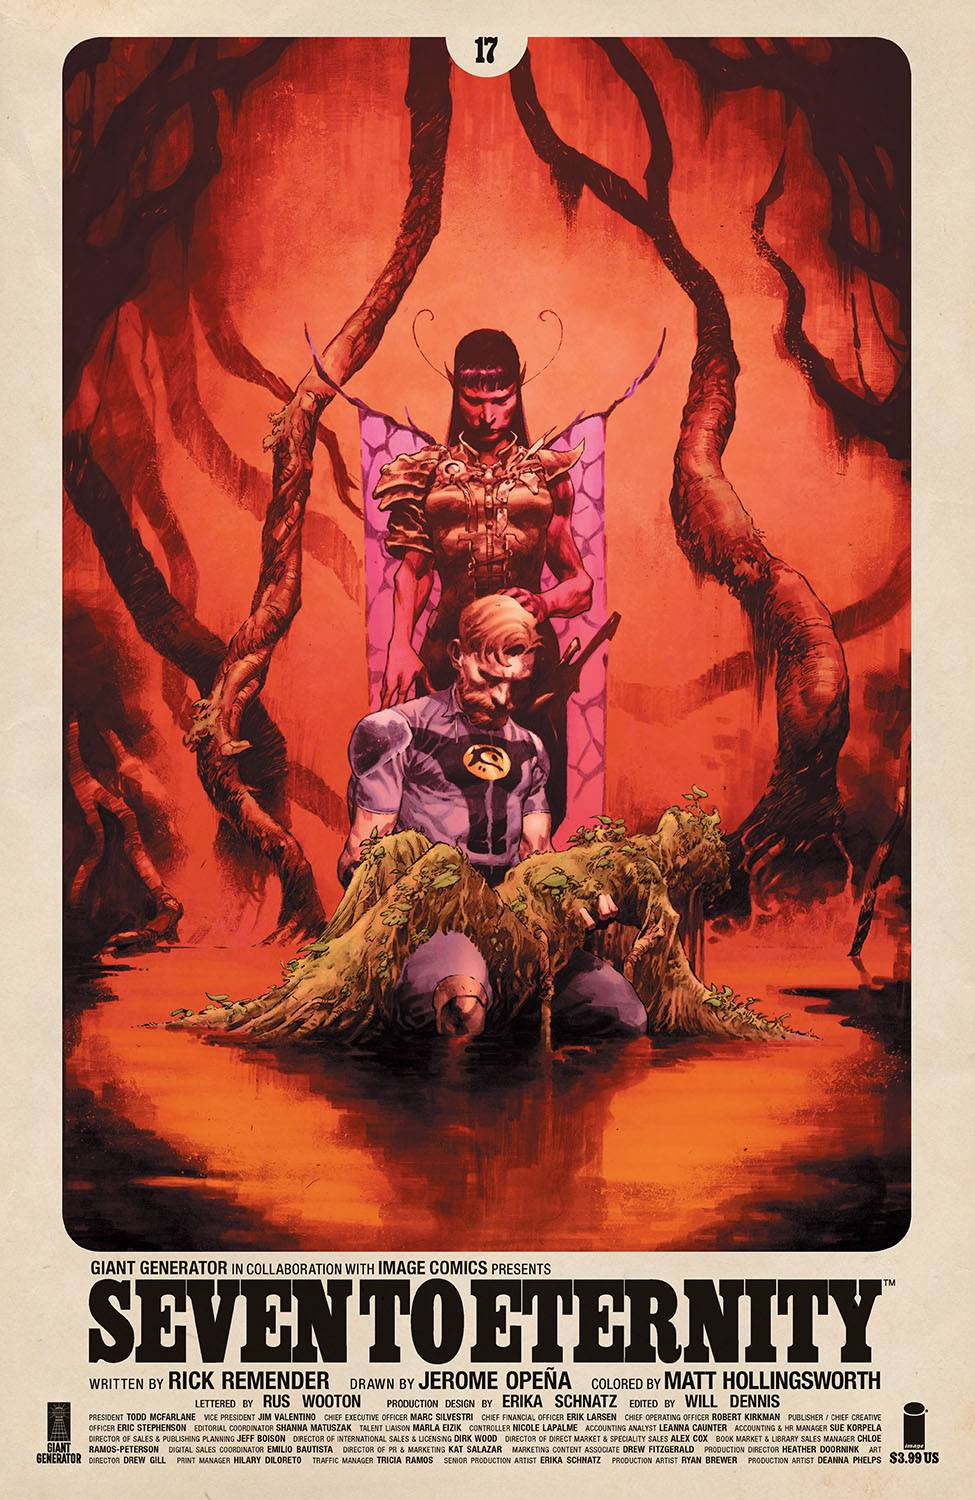 SEVEN TO ETERNITY #17 CVR A OPENA & HOLLINGSWORTH